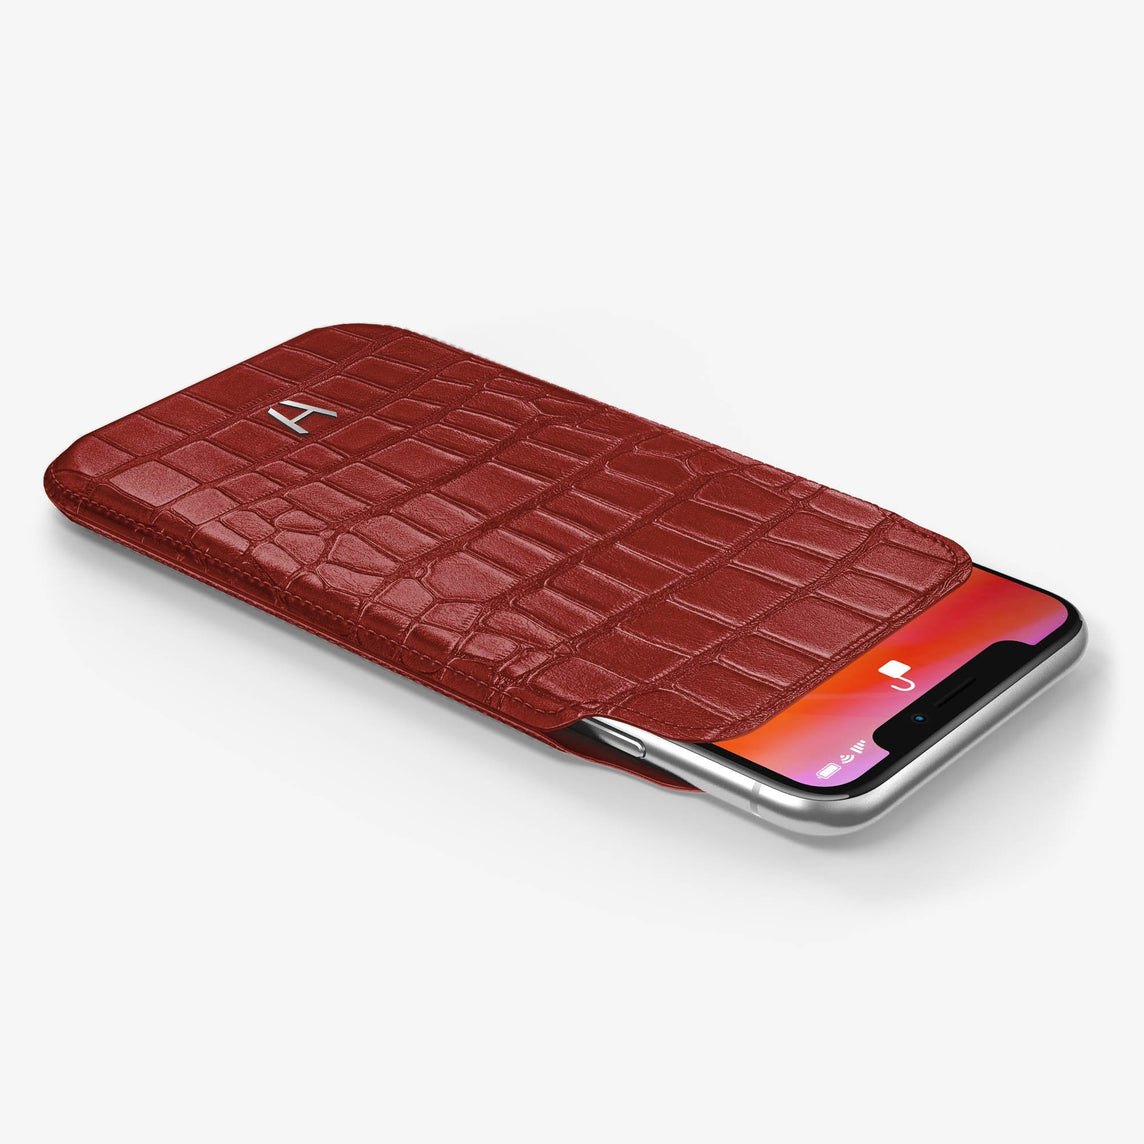 Alligator [iPhone Sleeve Case] [model:iphone-xr-case] [colour:red] [finishing:stainless-steel]